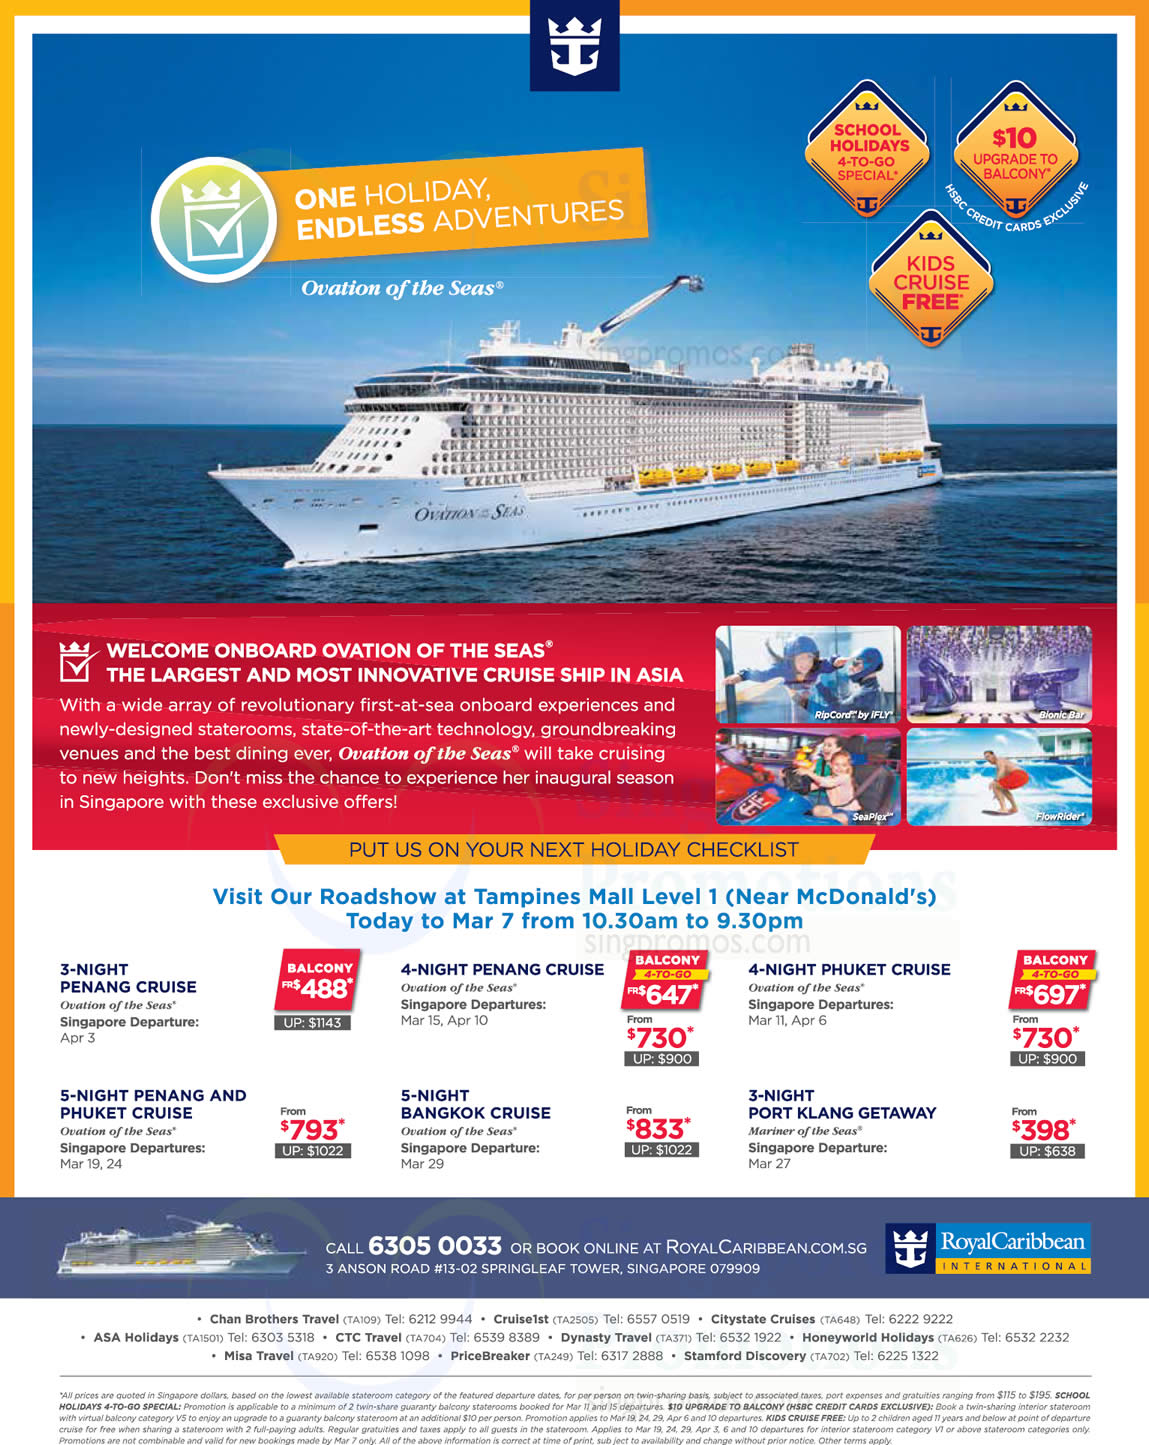 Royal Caribbean Roadshow At Tampines Mall Cruise From 398 From 2  7 Mar